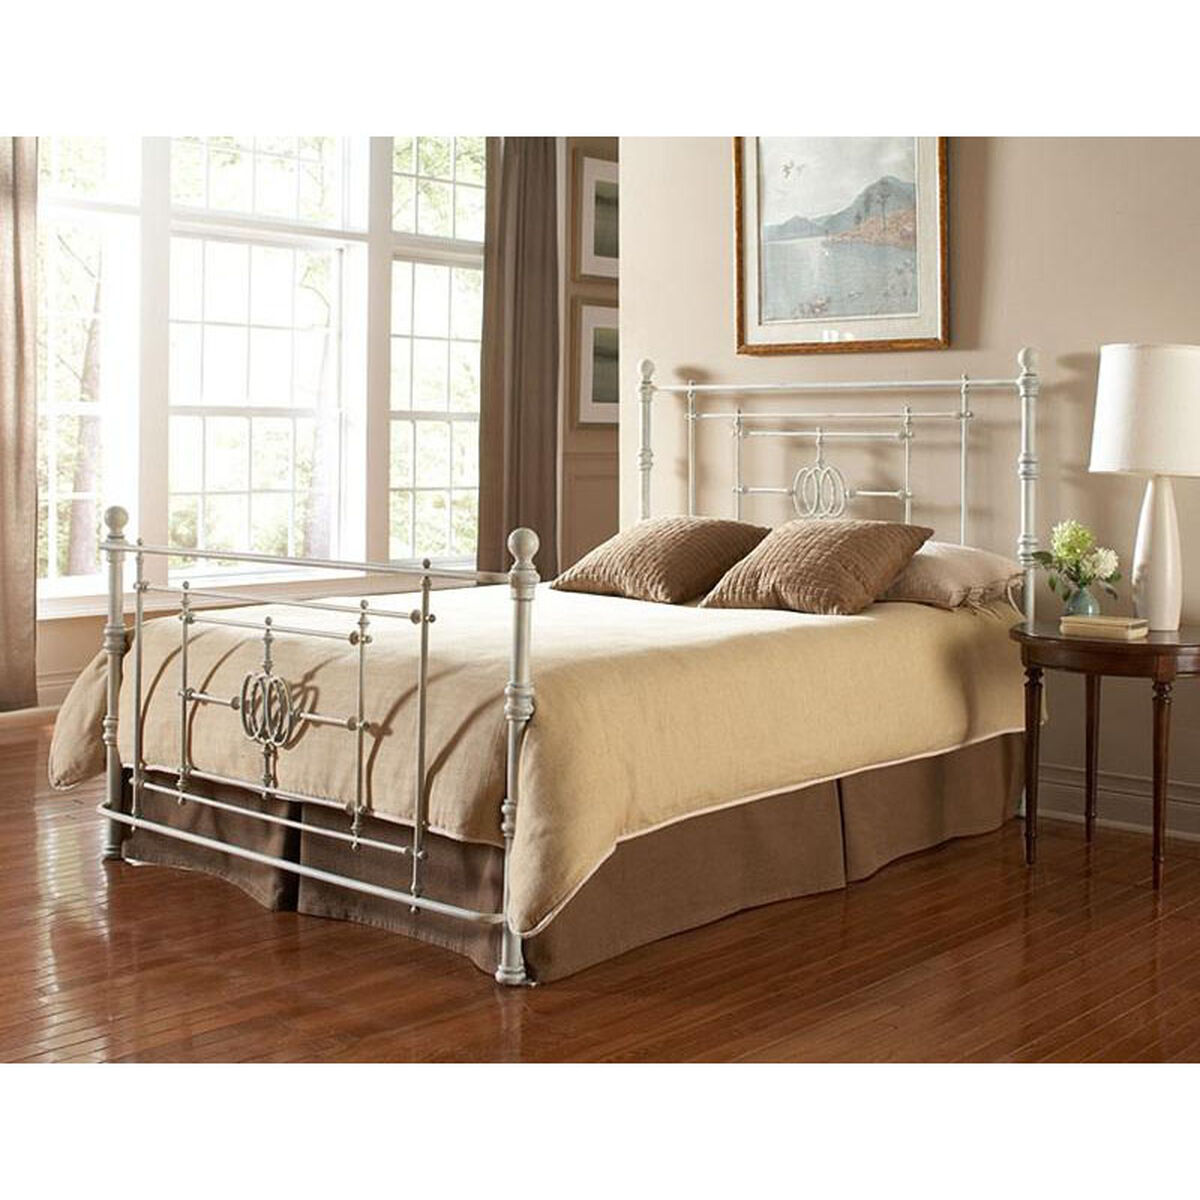 Metal Bed With Frame Queen B11145 Bizchair Com